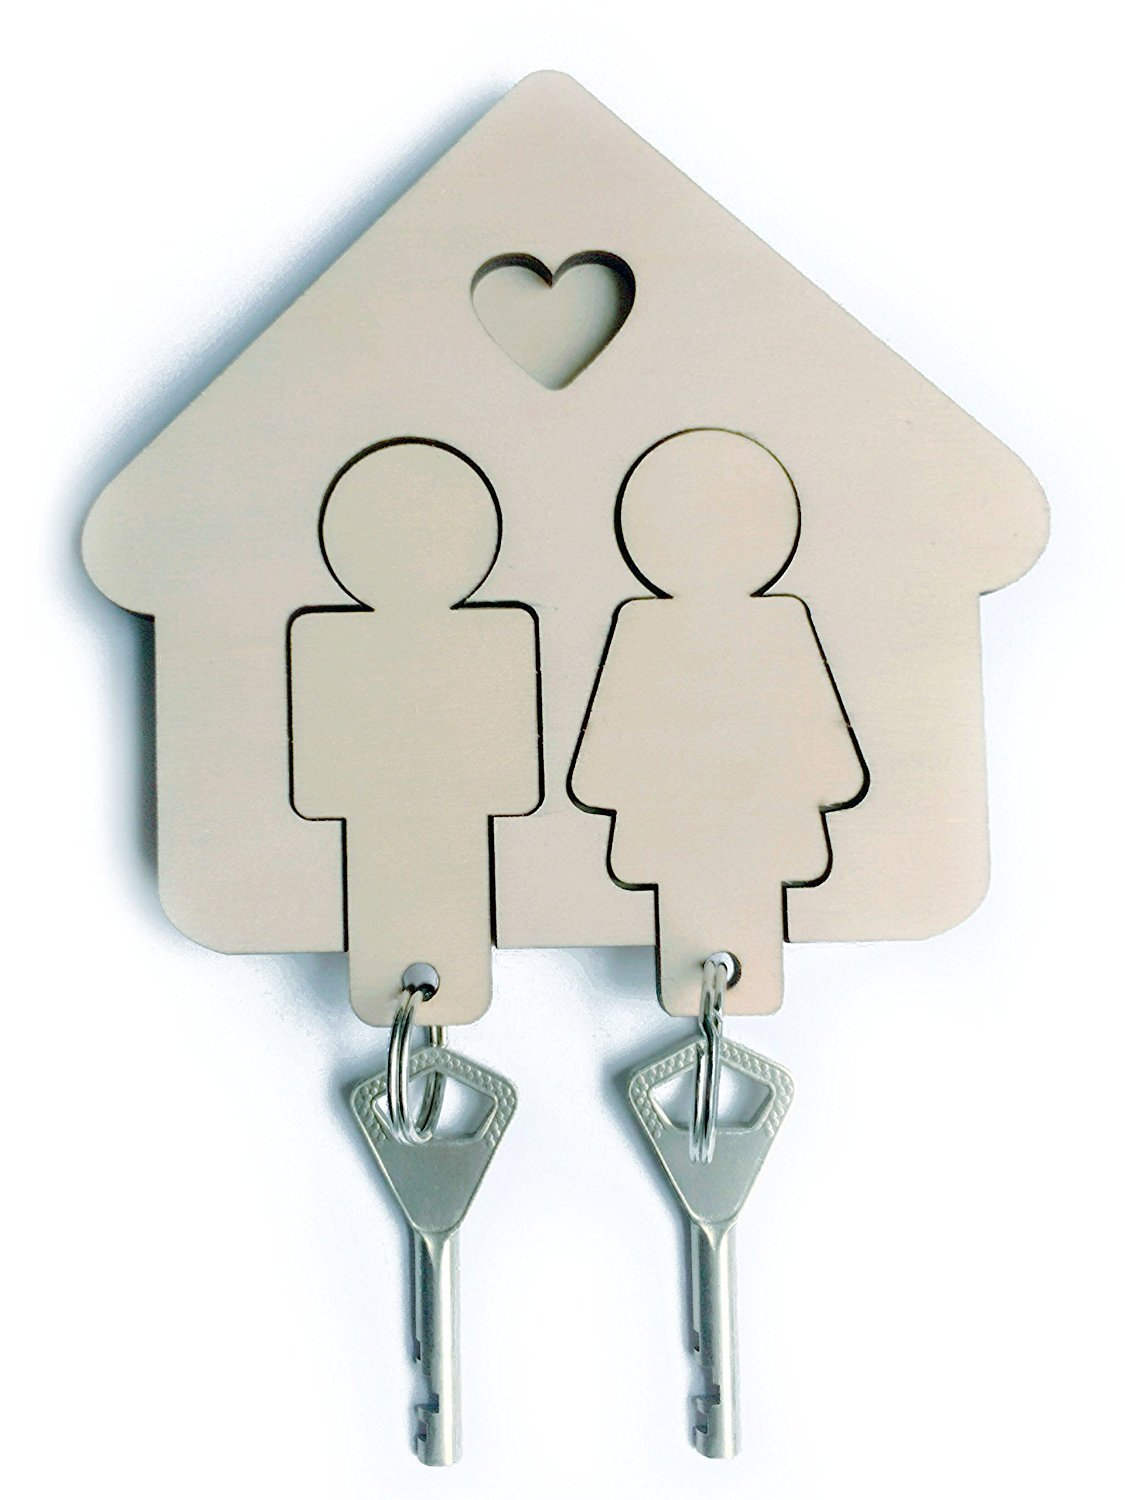 Cheap Cute Key Holder For Wall Find Cute Key Holder For Wall Deals On Line At Alibaba Com